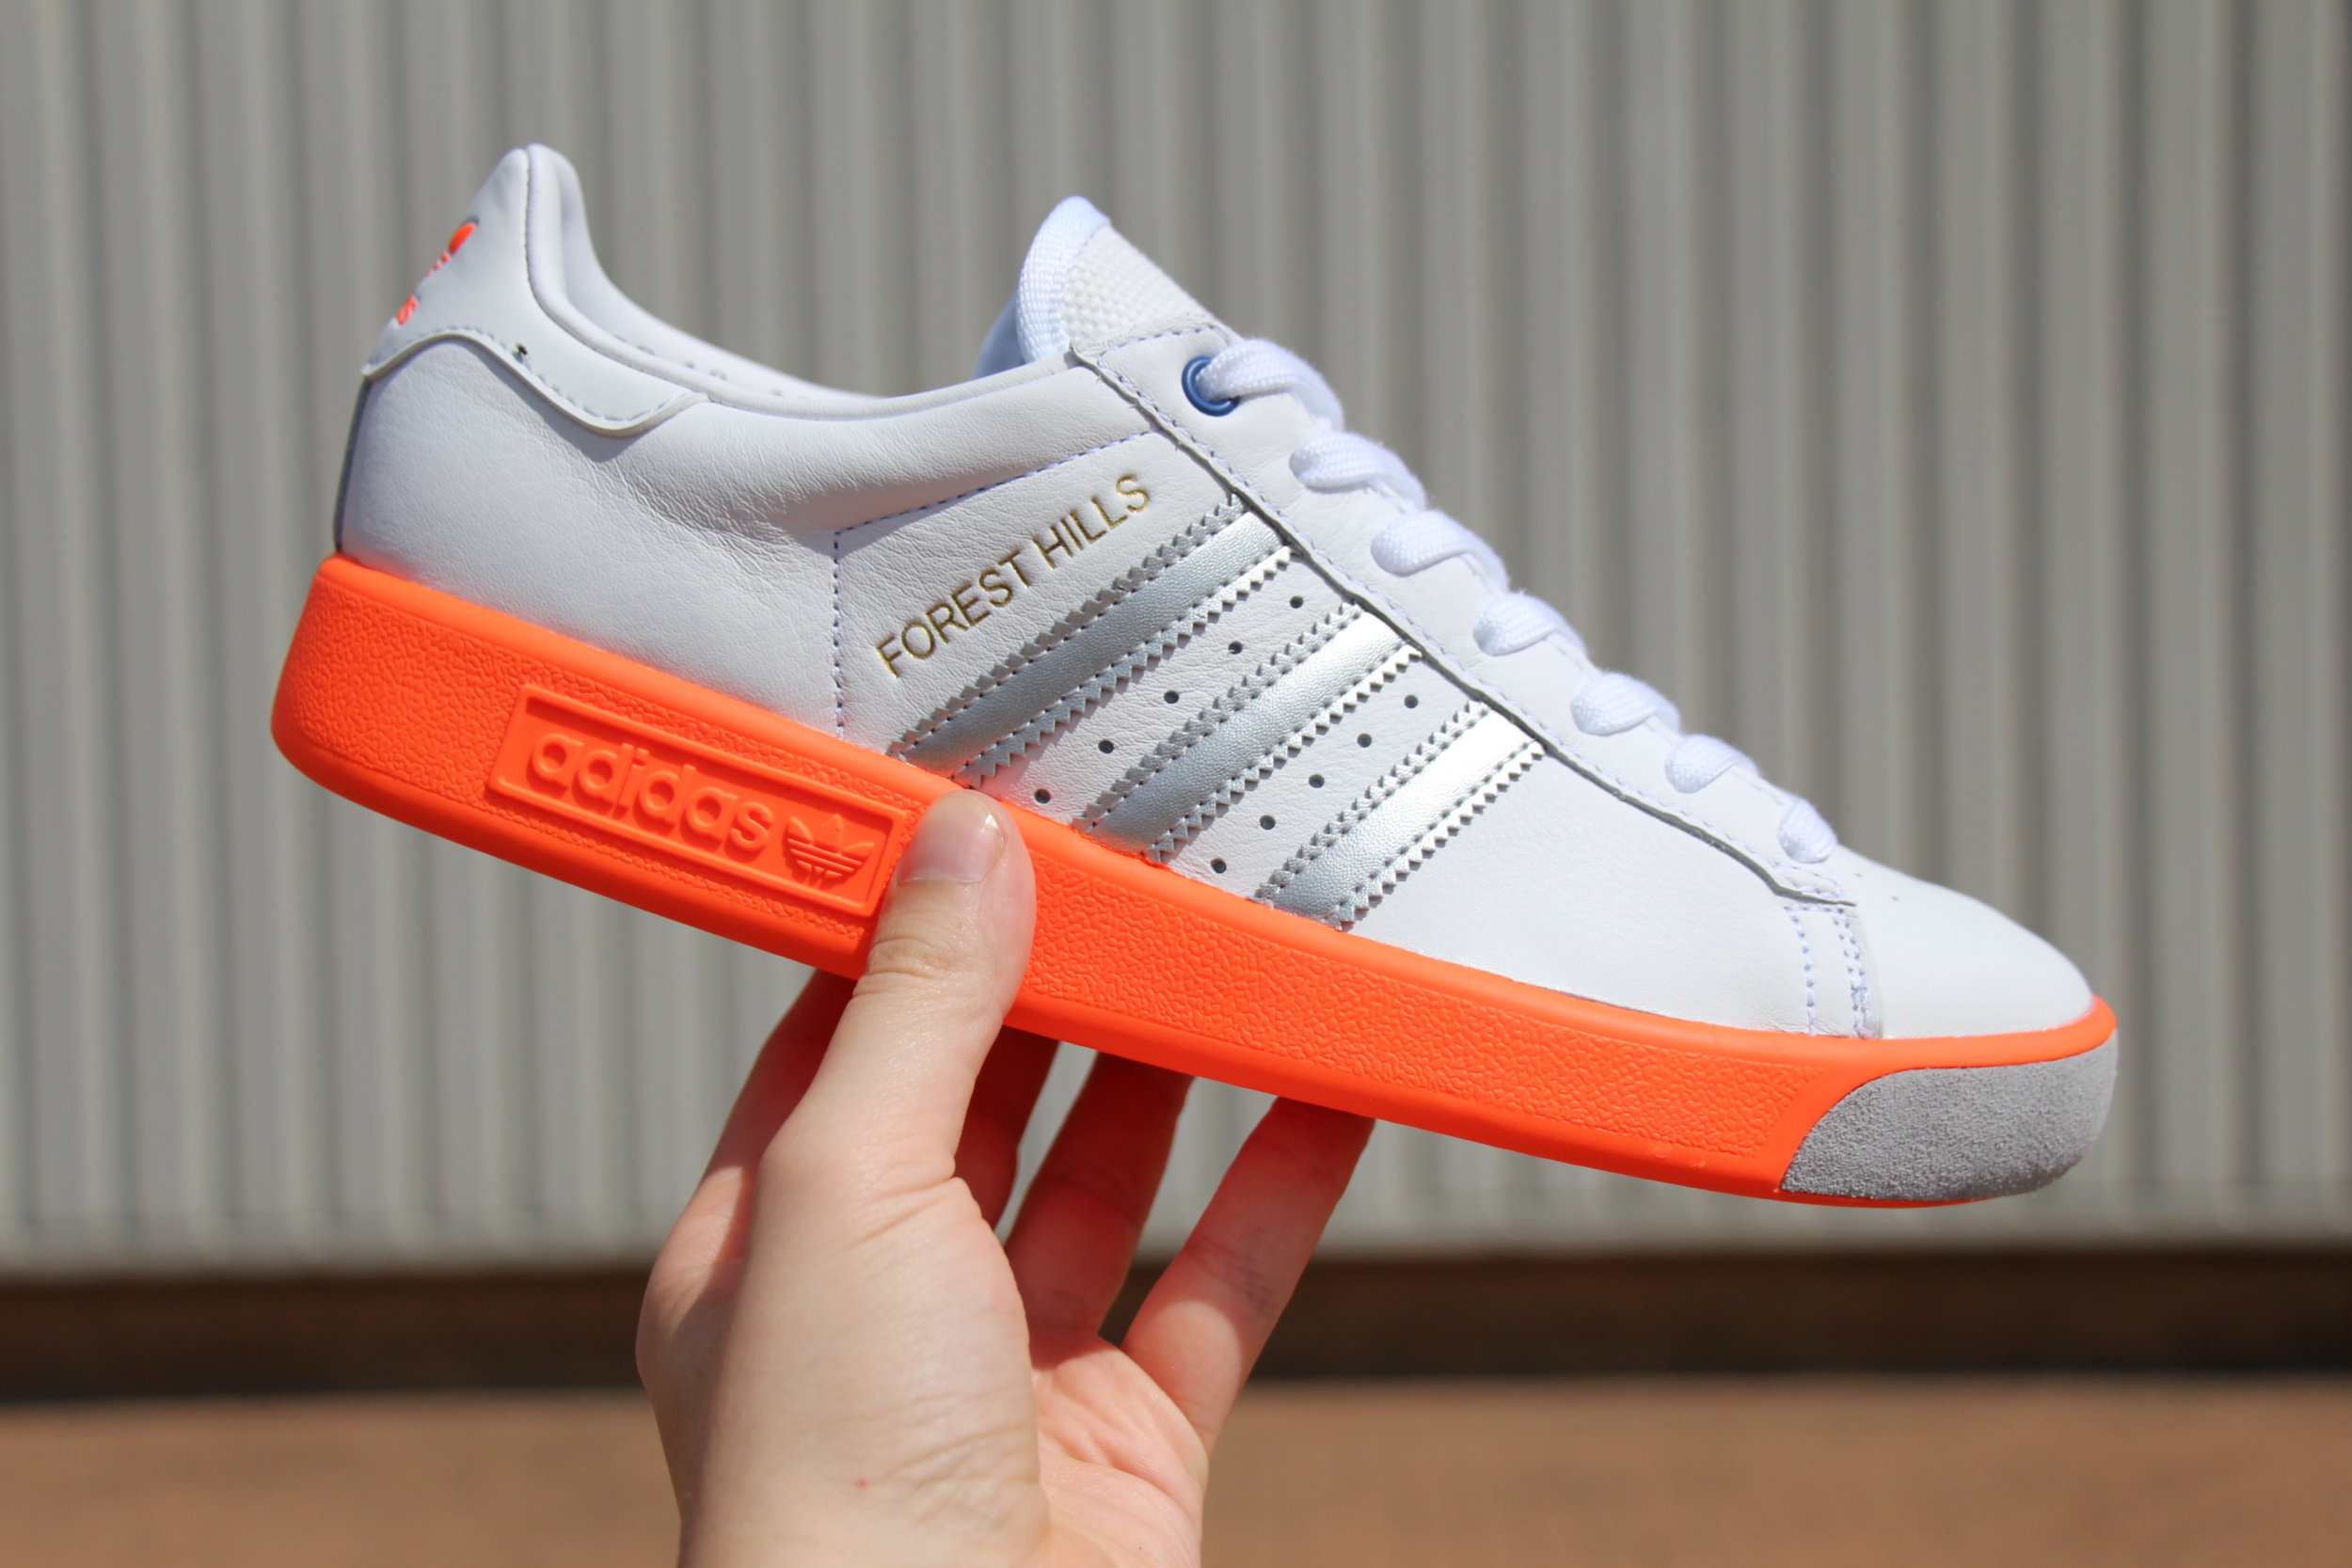 adidas Forest Hills Space Race trainer